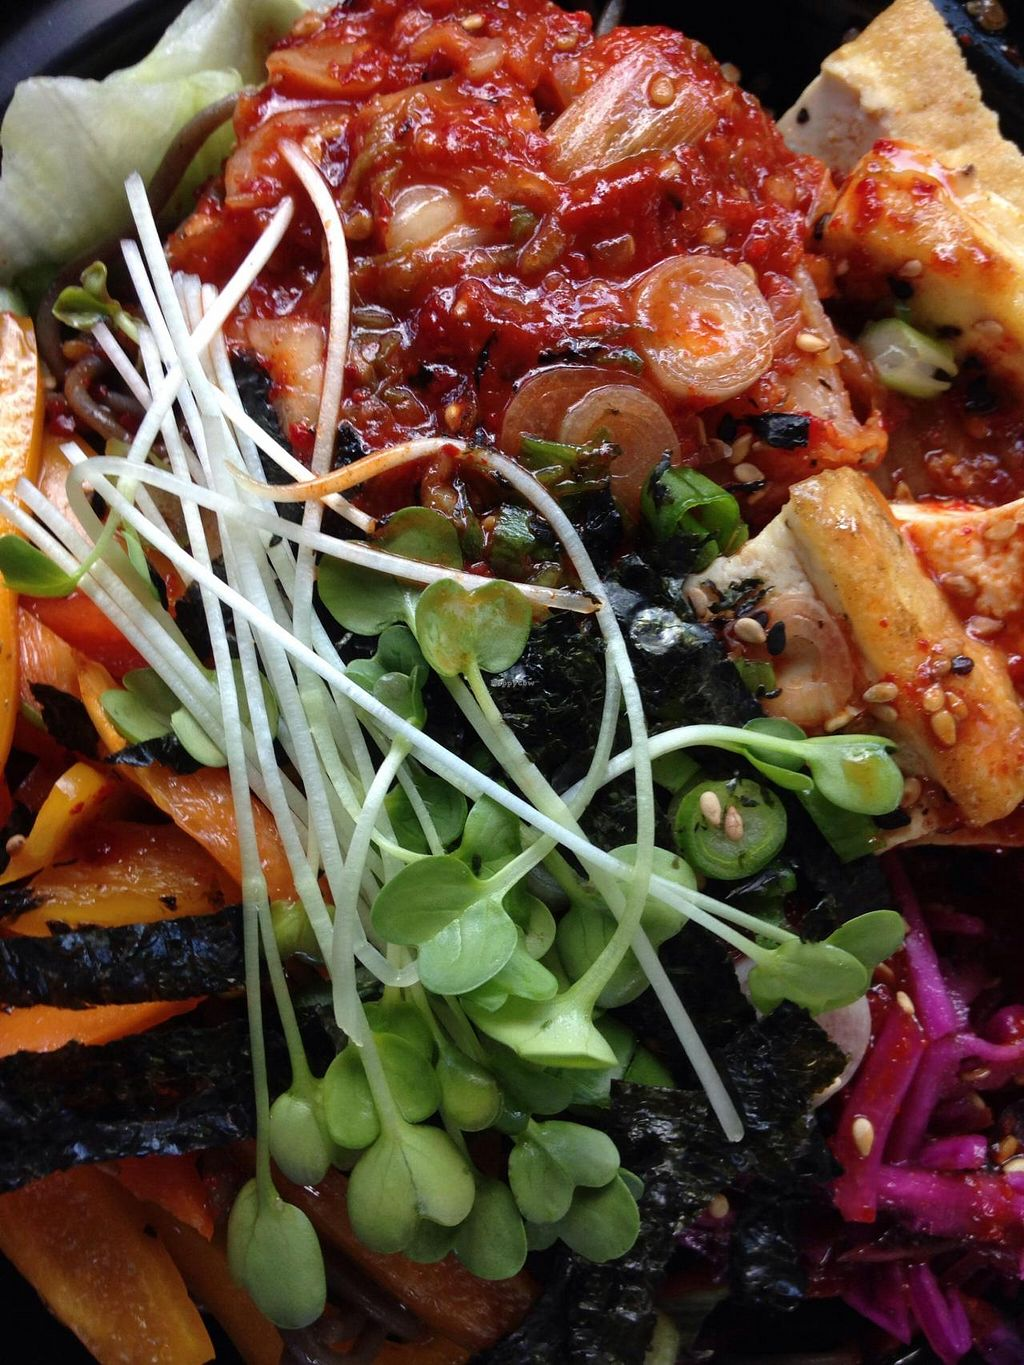 """Photo of Seoul Food DC  by <a href=""""/members/profile/cookiem"""">cookiem</a> <br/>Summer bibimbap <br/> June 13, 2014  - <a href='/contact/abuse/image/47992/71975'>Report</a>"""